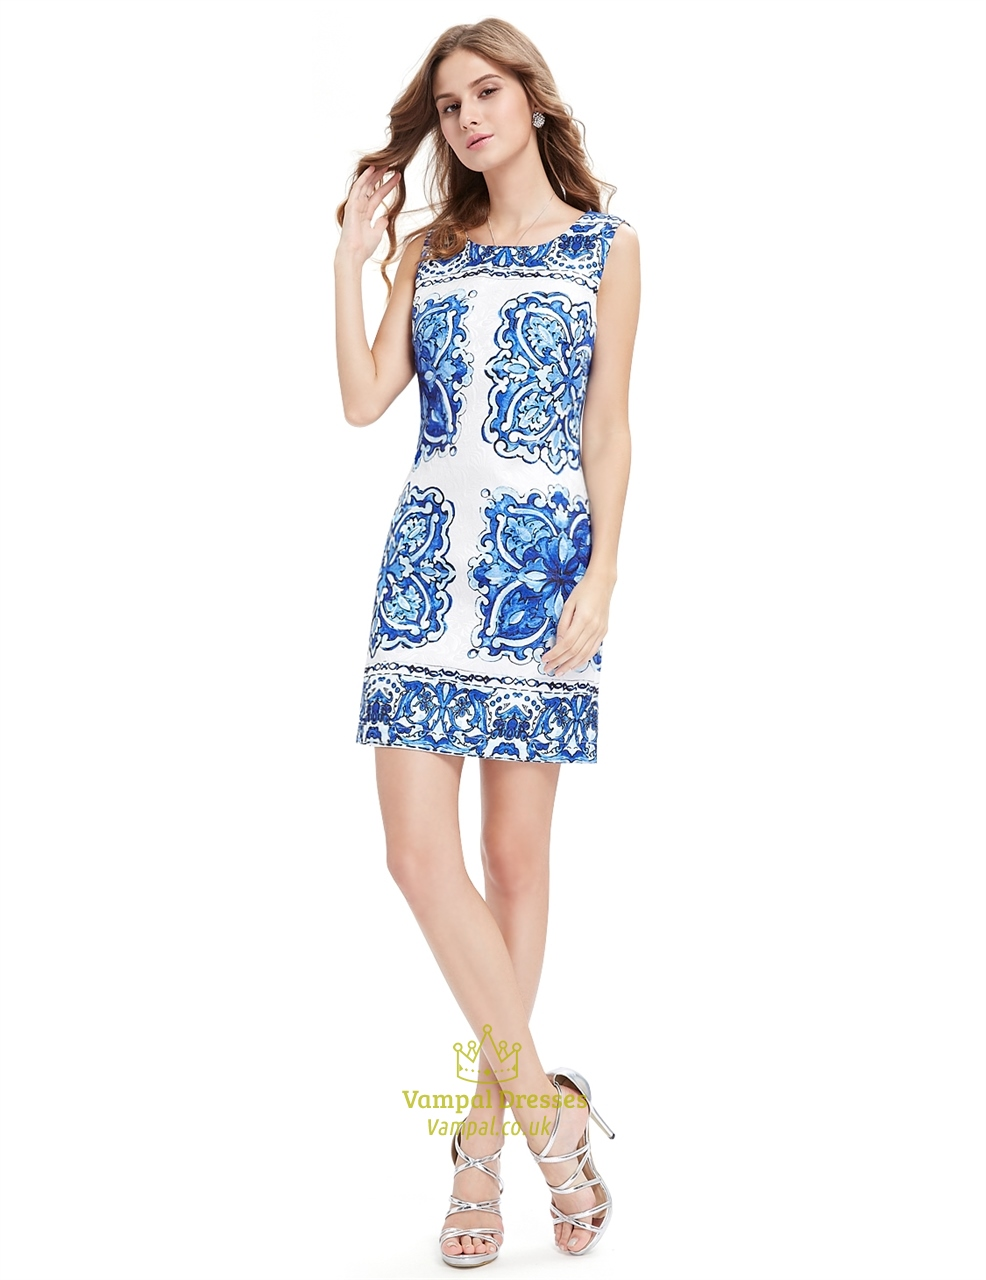 White Short Bodycon Mini Summer Dress With Blue Floral ...